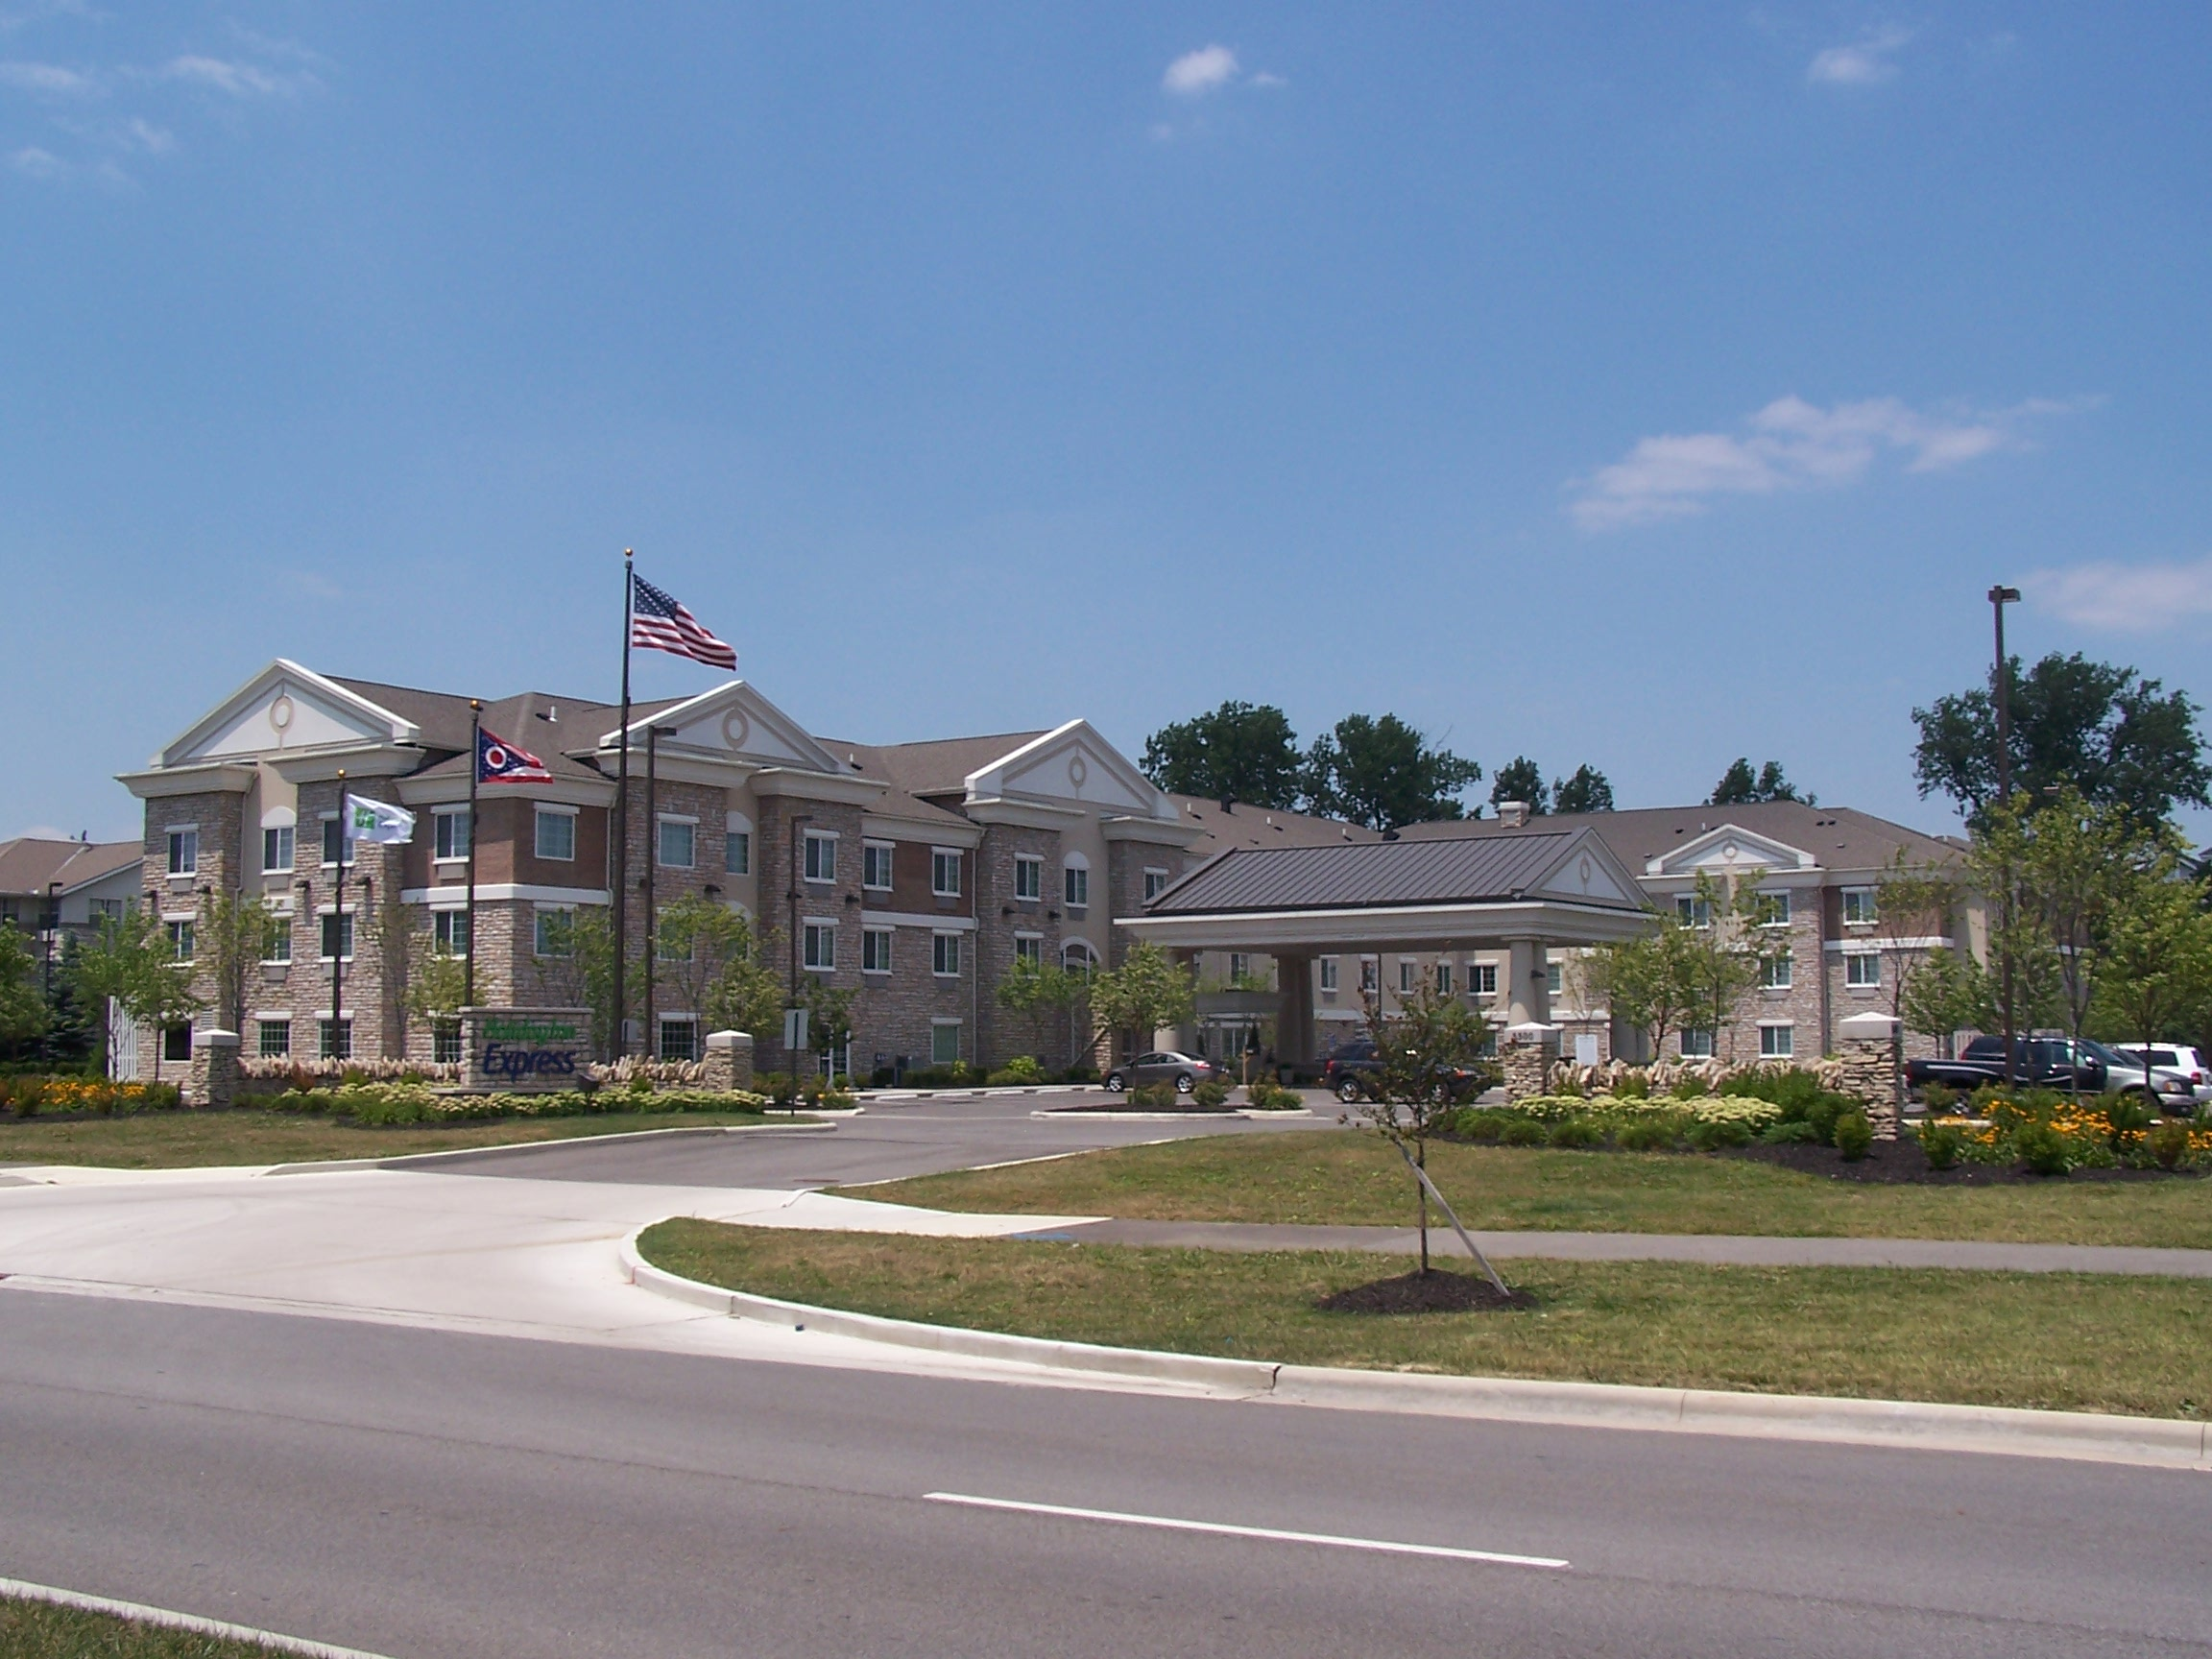 Outside view of the Holiday Inn Express in Dublin, OH